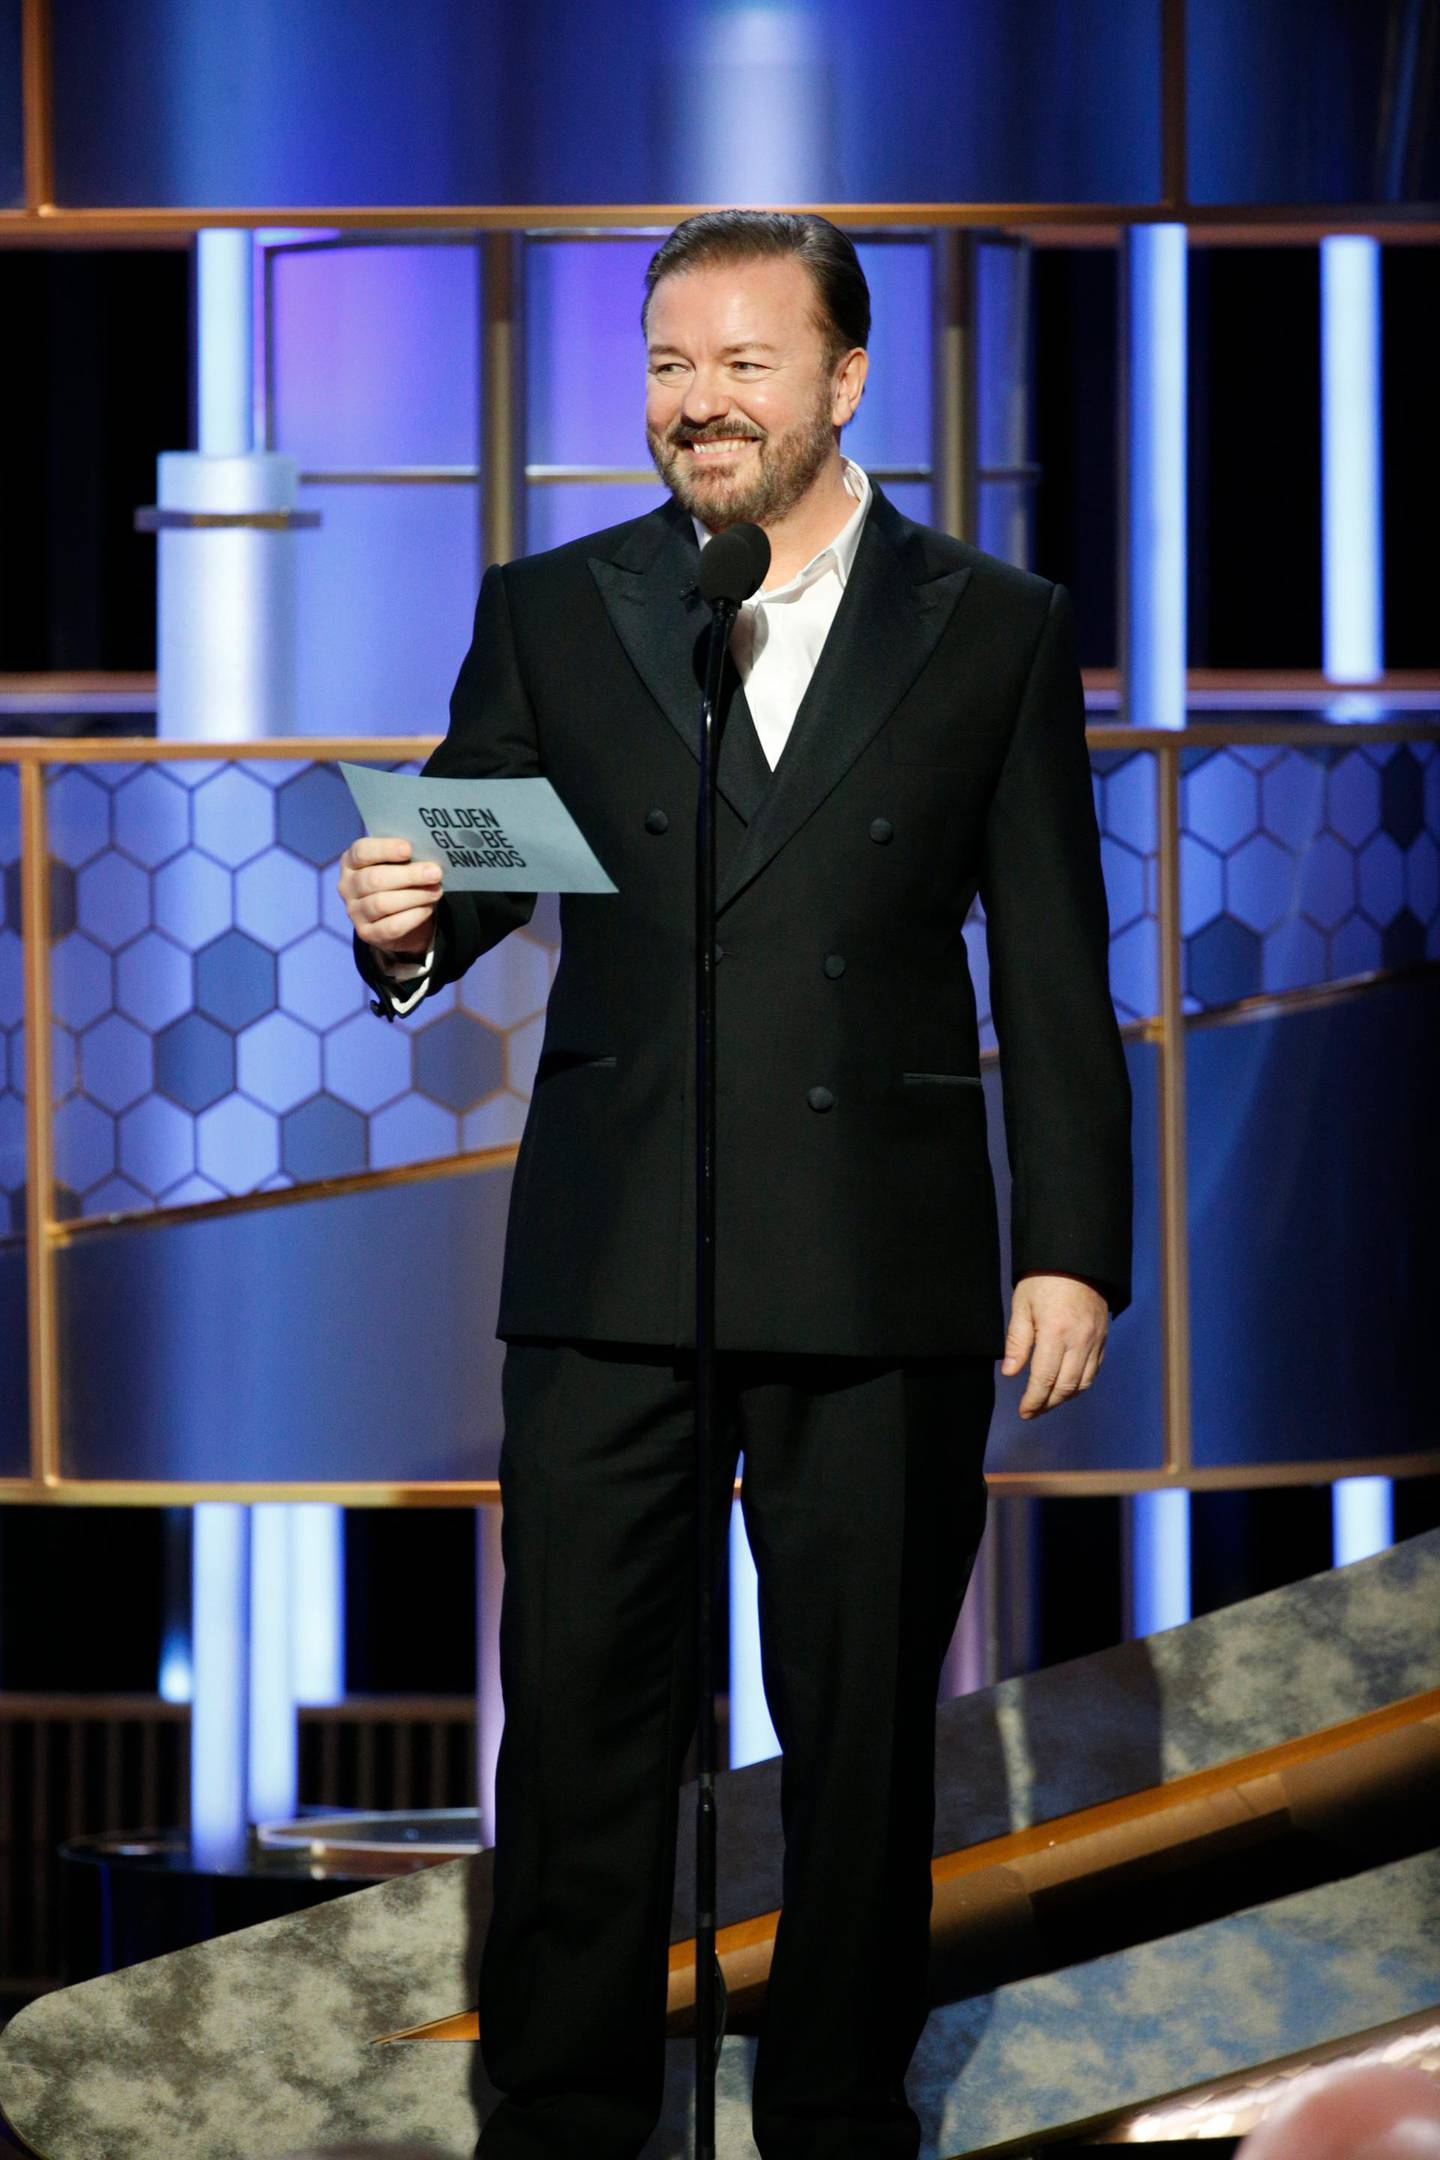 This image released by NBC shows host Ricky Gervais at the 77th Annual Golden Globe Awards at the Beverly Hilton Hotel in Beverly Hills, Calif., on Sunday, Jan. 5, 2020. (Paul Drinkwater/NBC via AP)